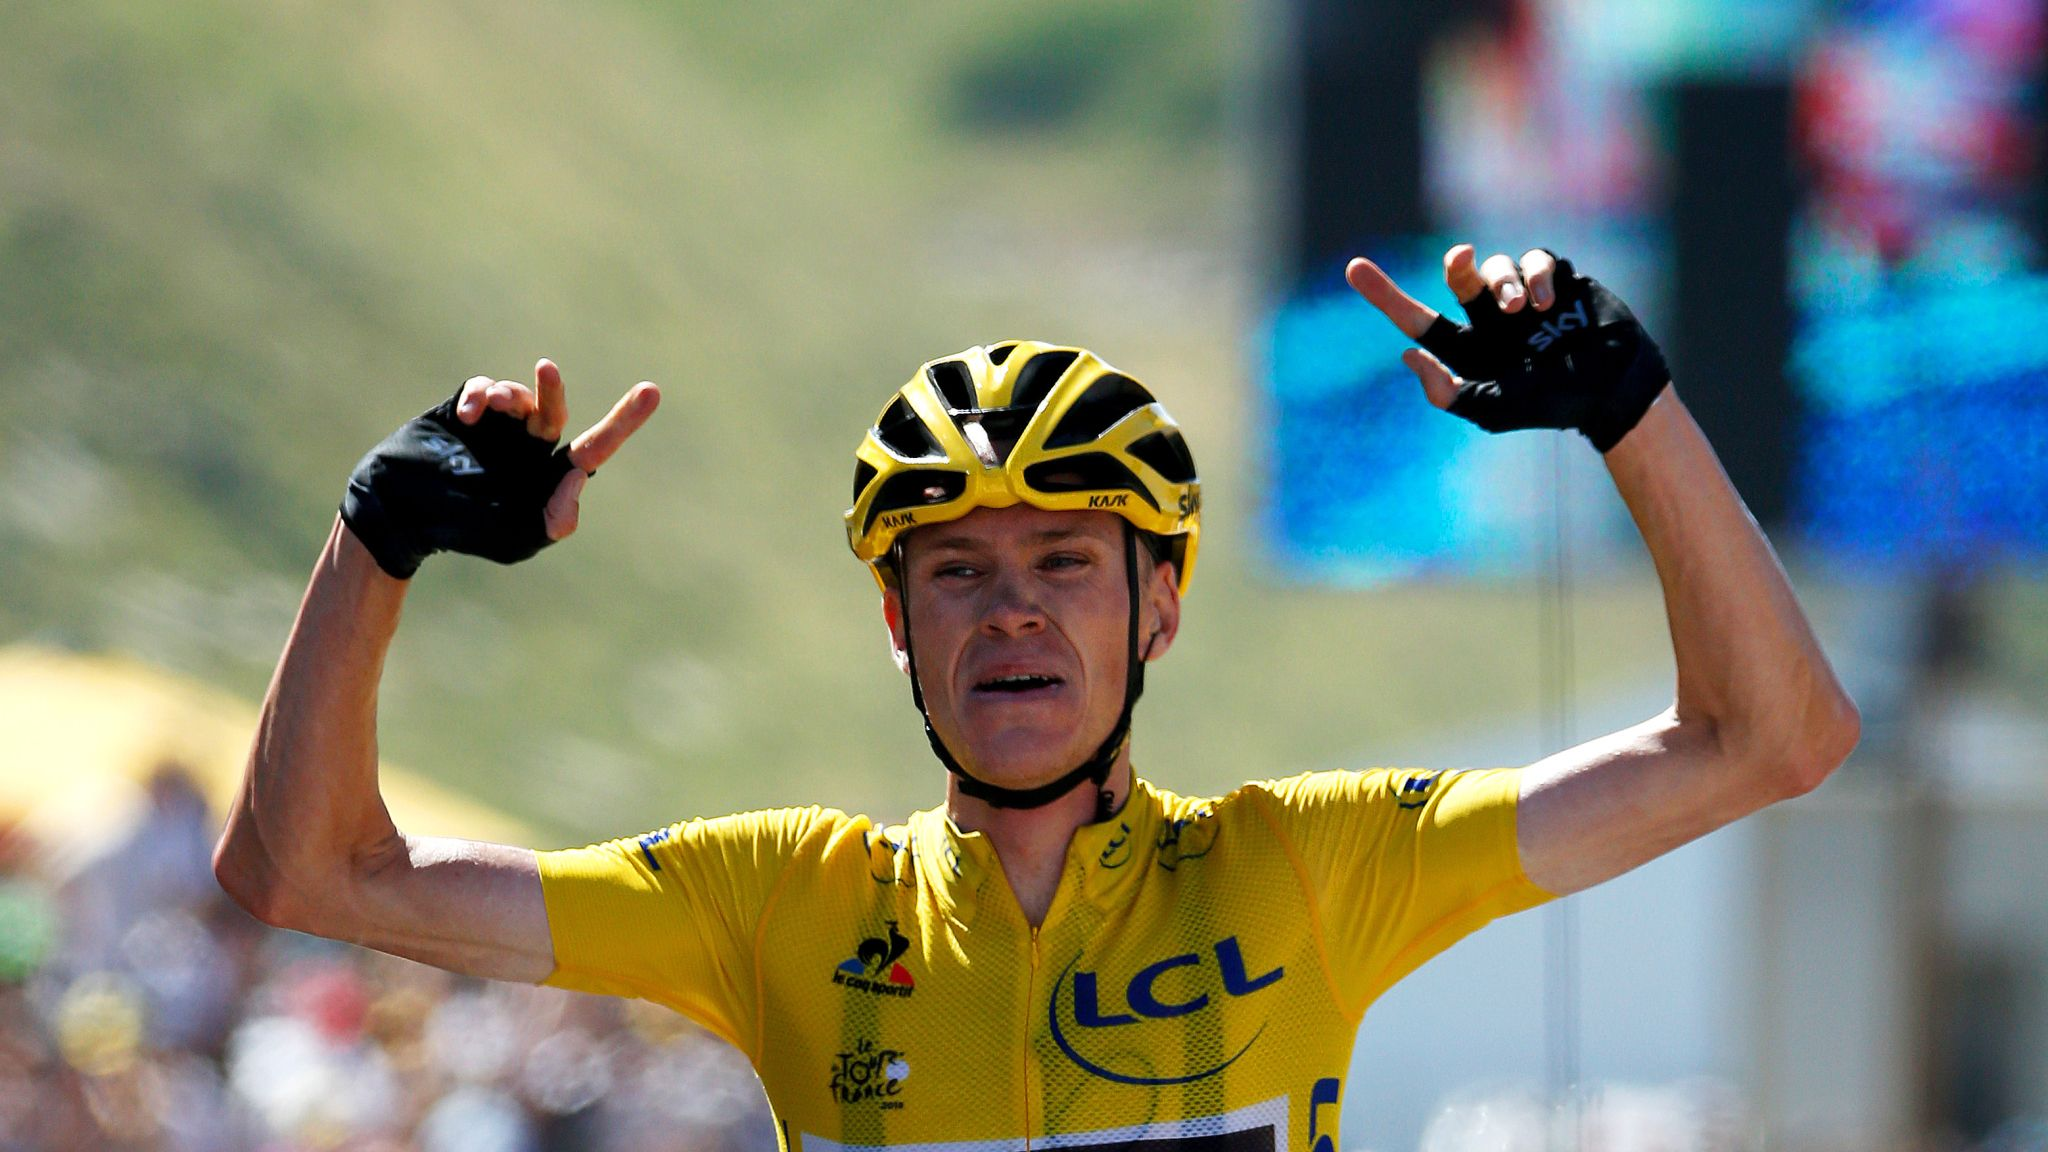 Cycling salaries: How much do professional cyclists earn